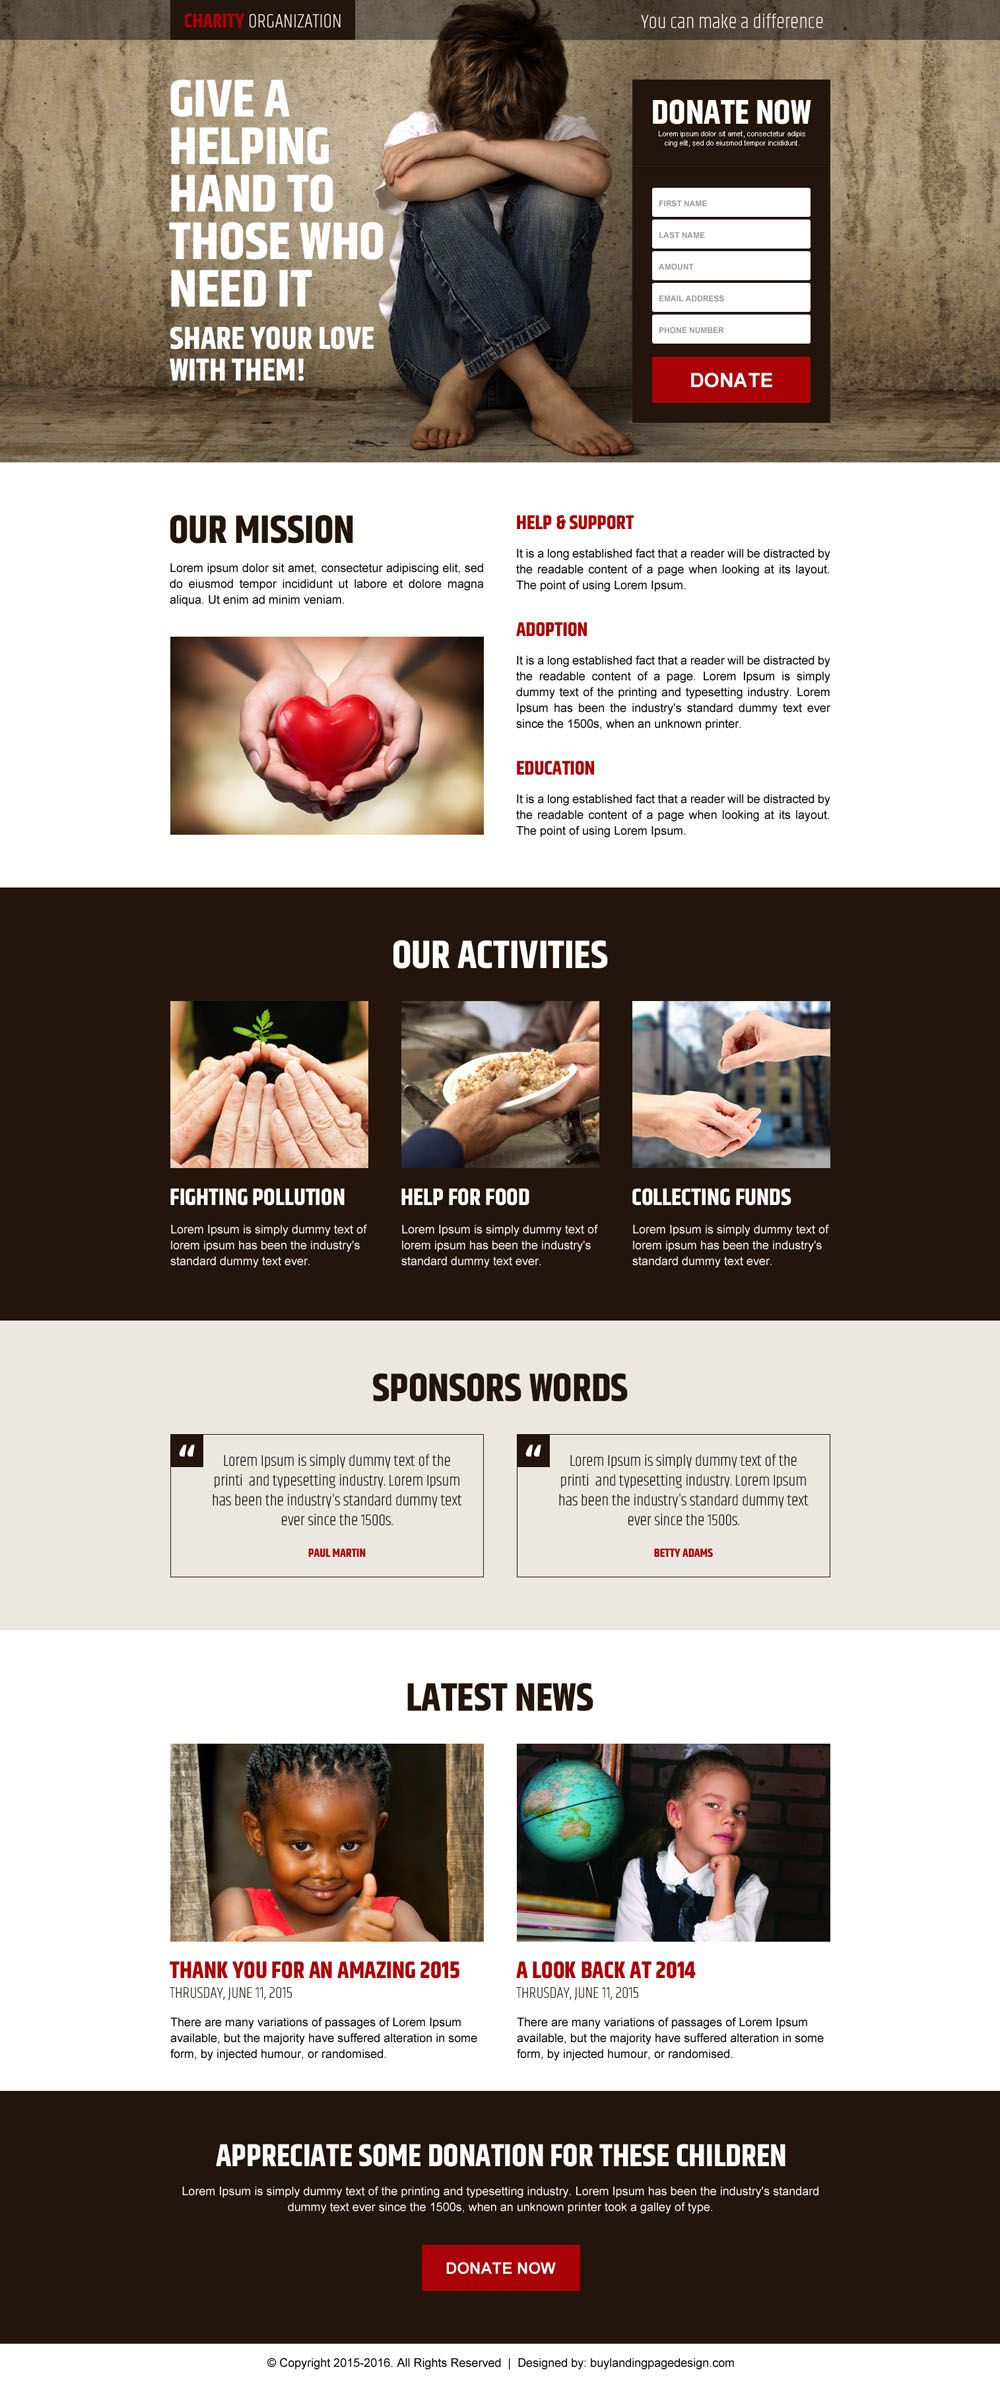 charity-organization-landing-page-design-templates-to-capture-leads ...